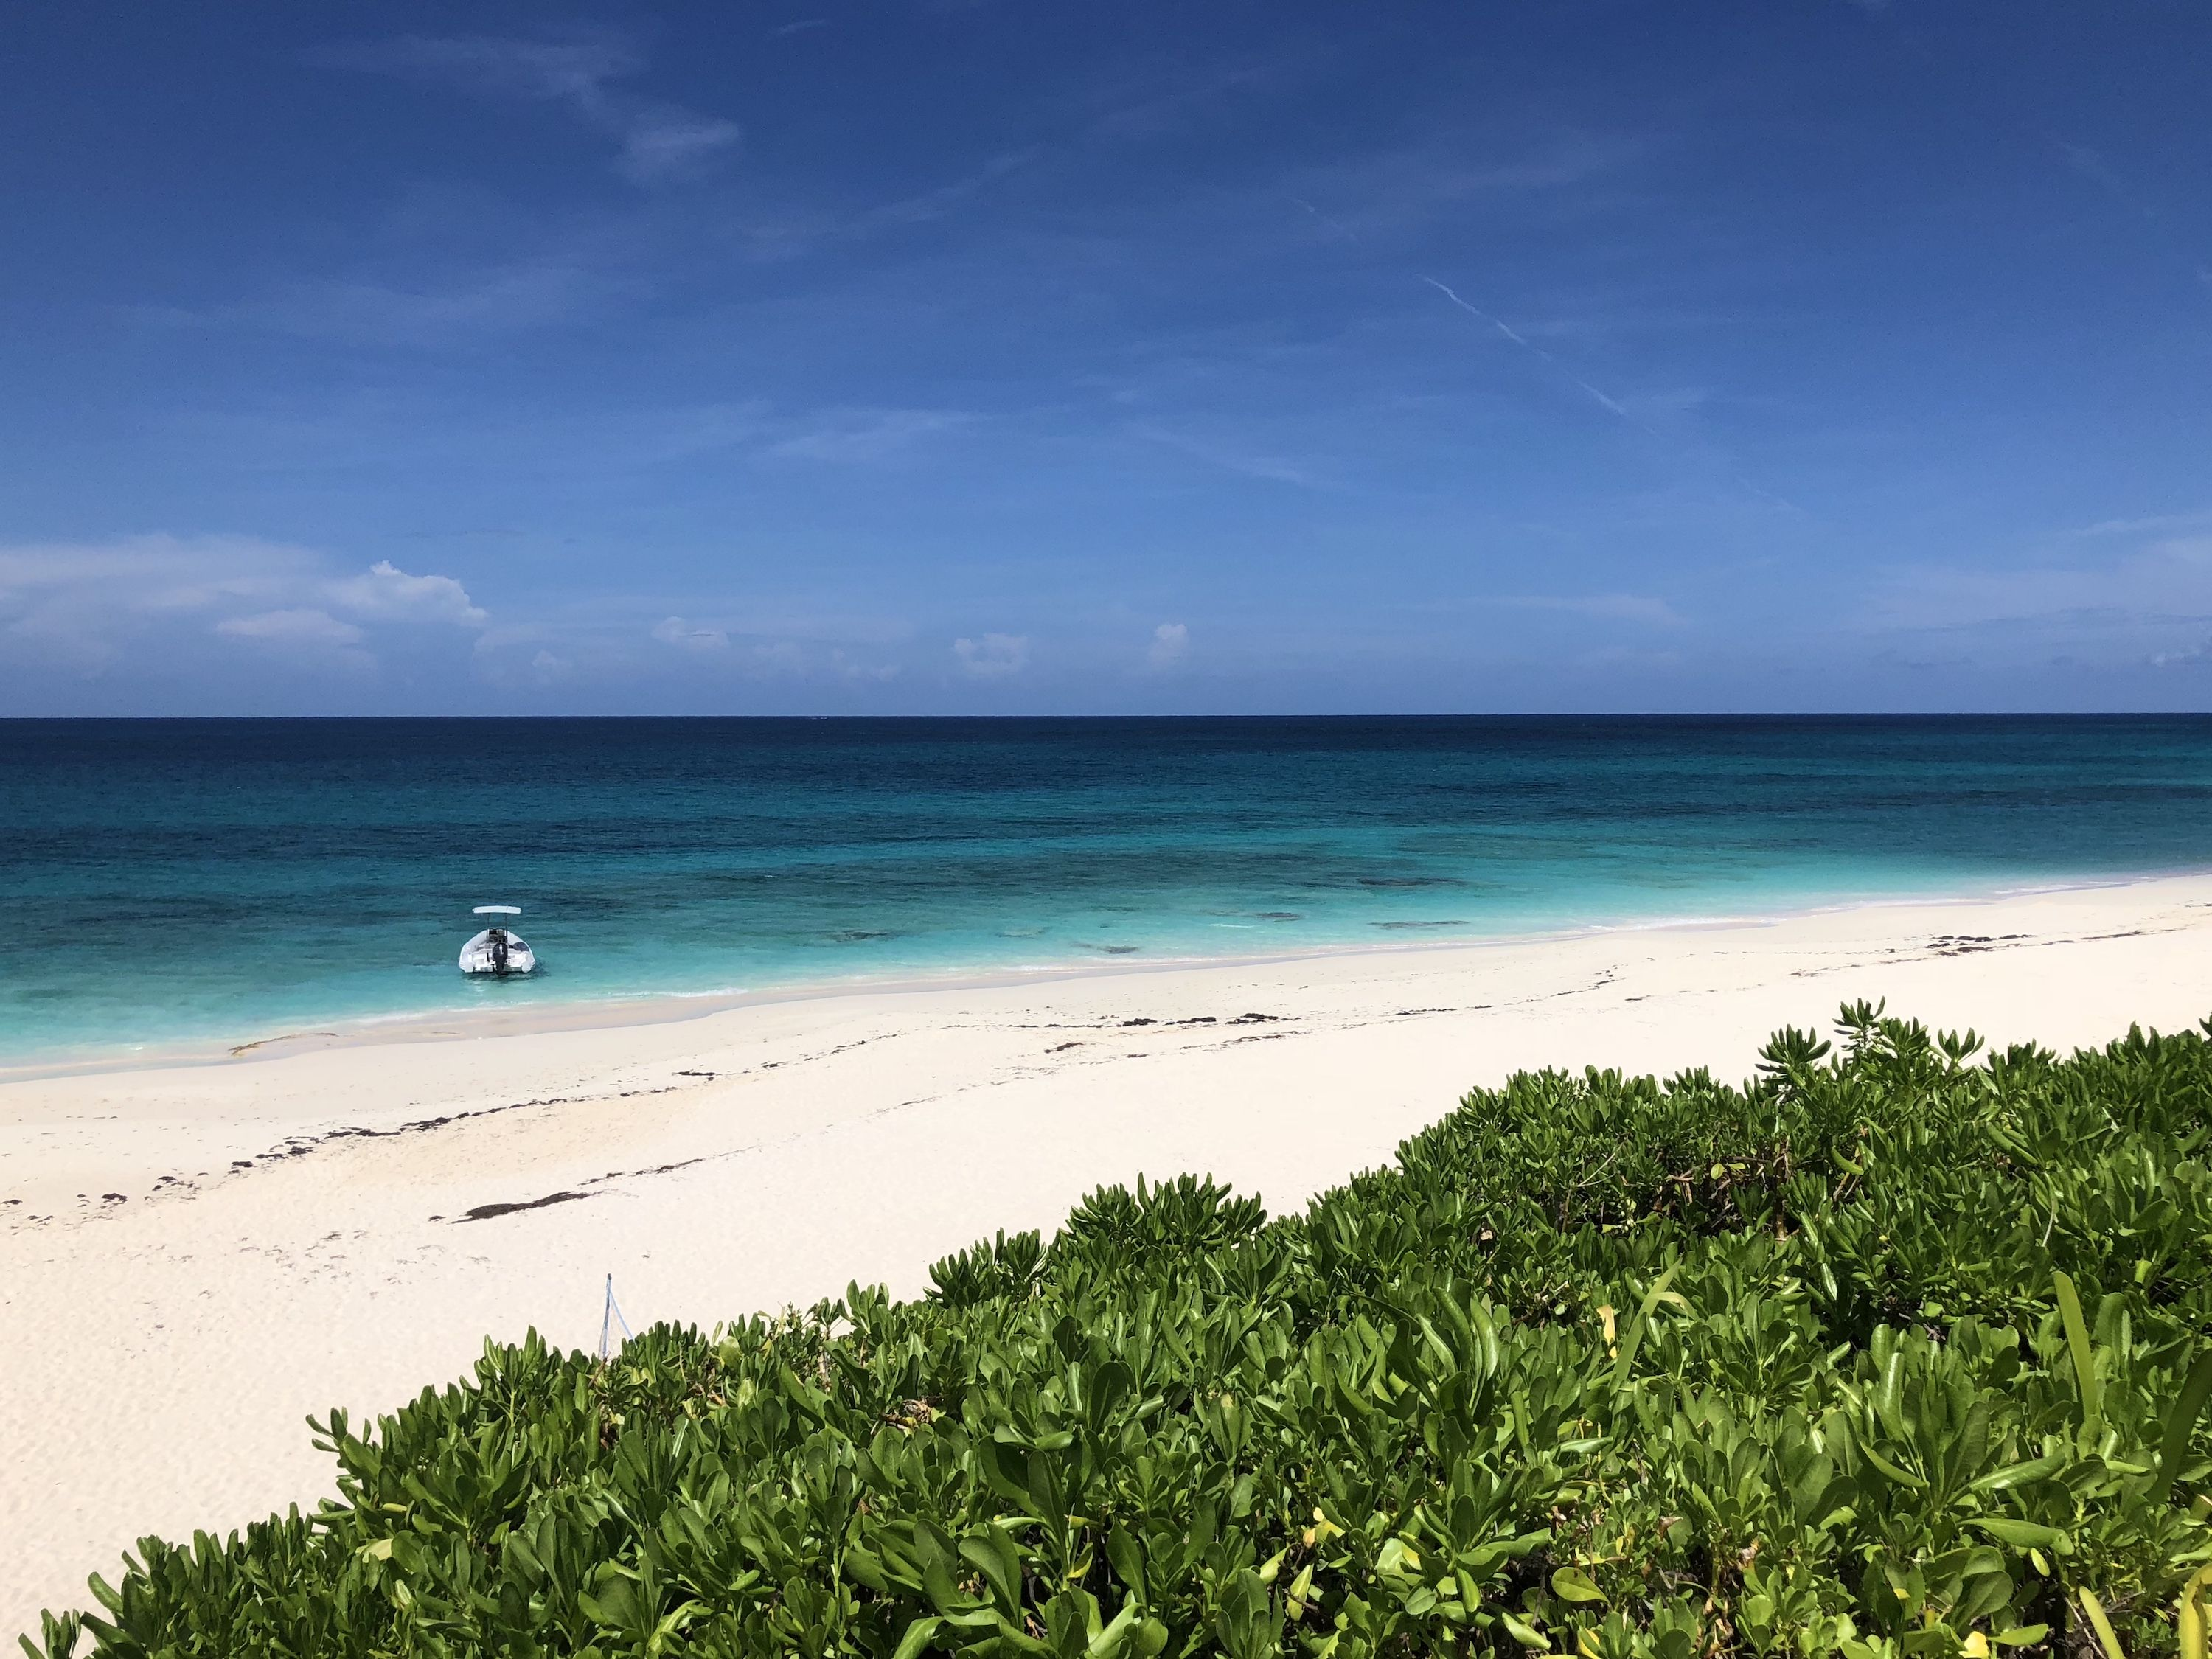 Bahama Travel Tips - Abacos Island & Other Insider Advice